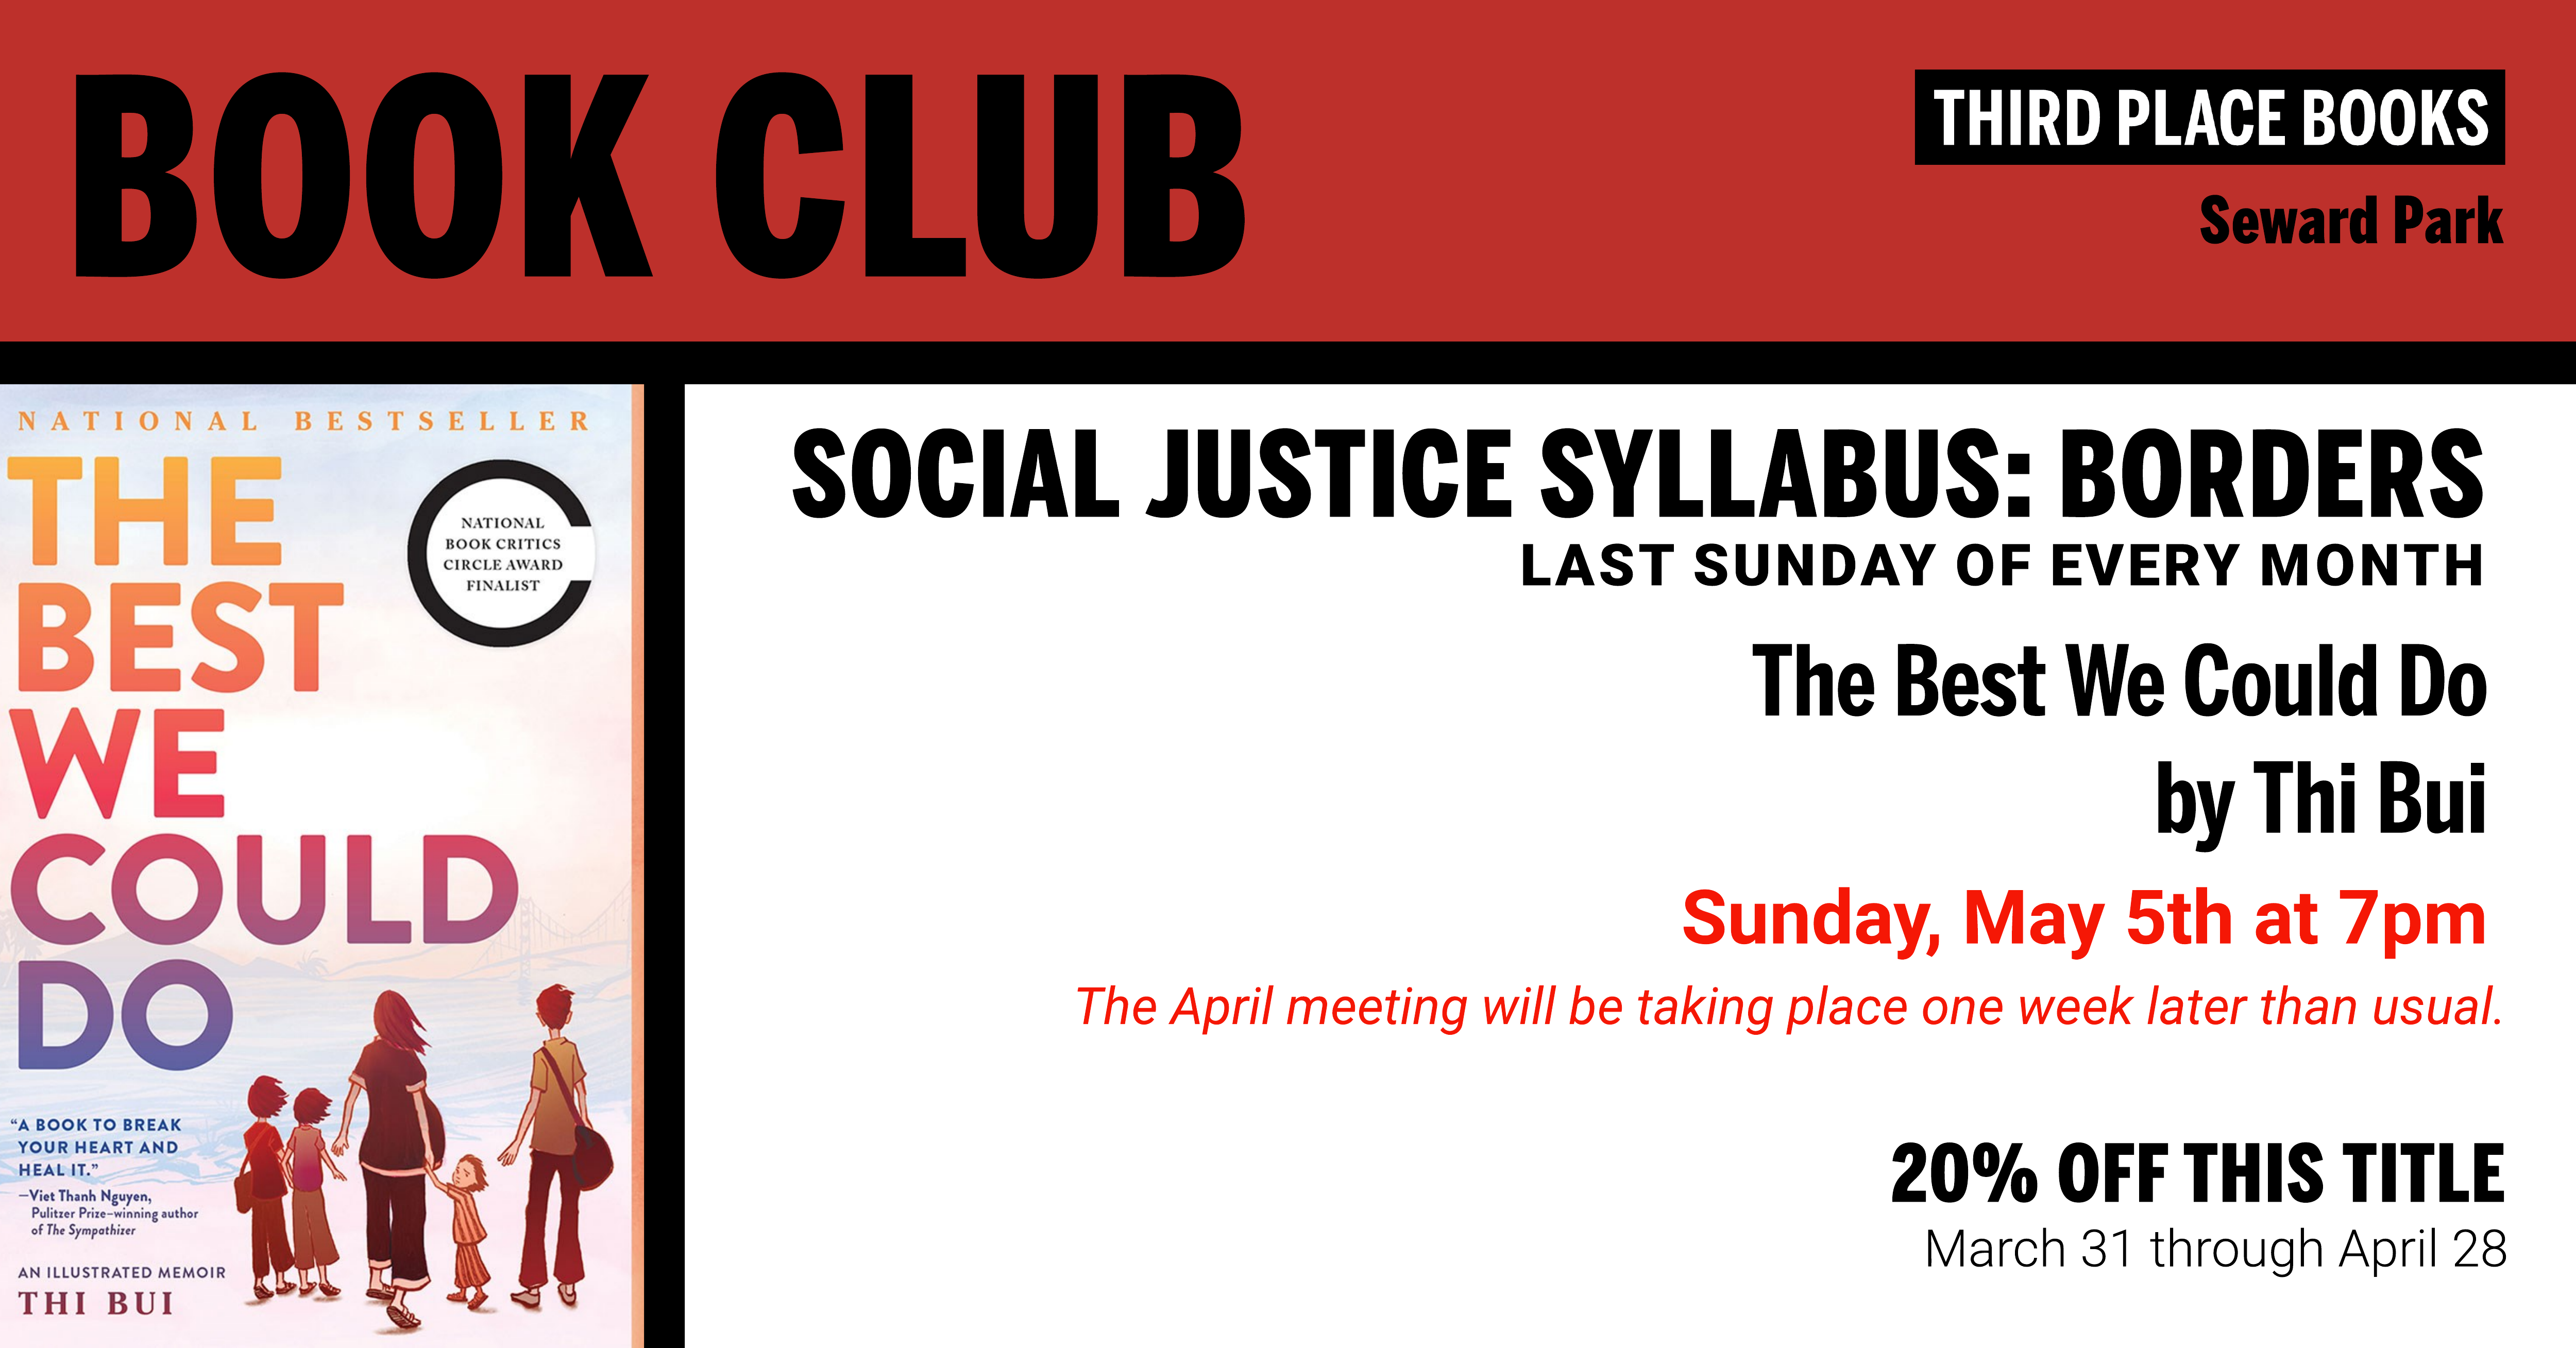 Social Justice Syllabus Book Club: Borders discussing The Best We Could Do by Thi Bui on Sunday, May 5th at 7pm